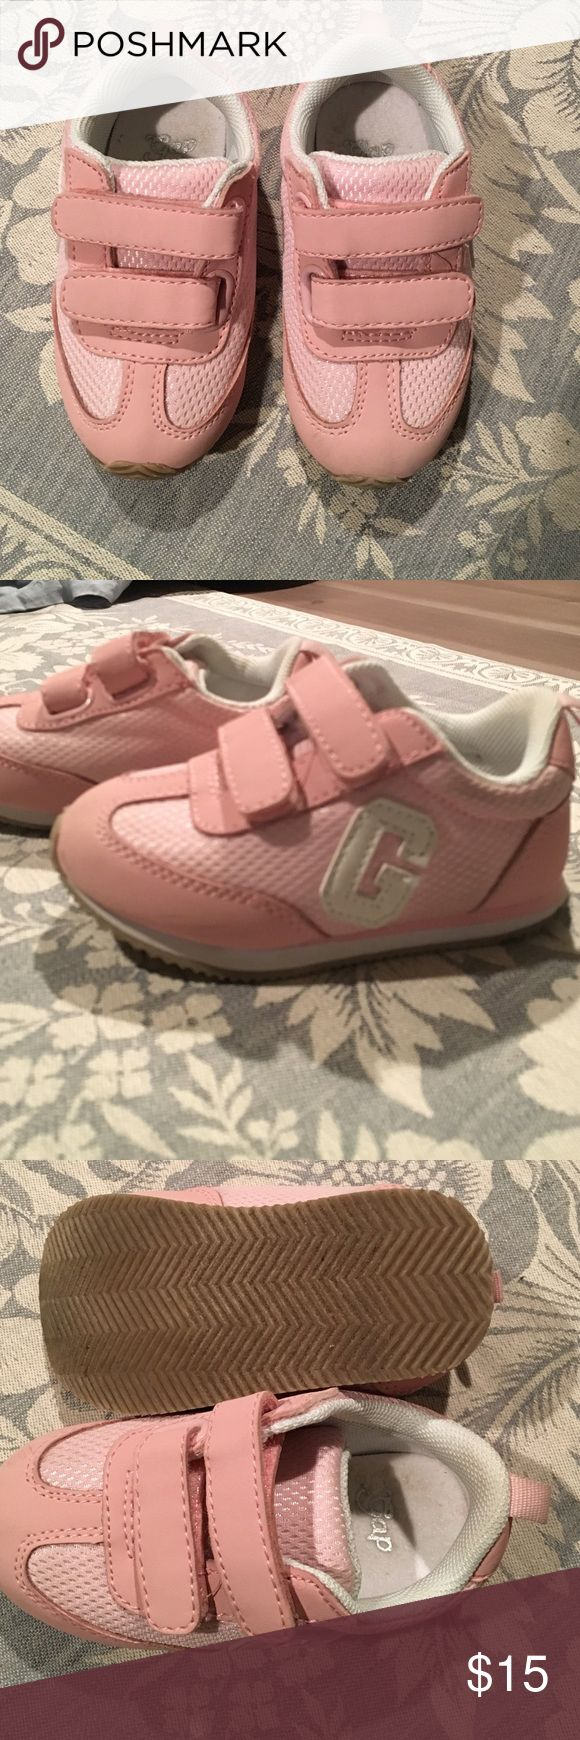 Gap kids sneakers Excellent condition gap kids pink sneakers. New bad odor, non smoking home. GAP Shoes Sneakers